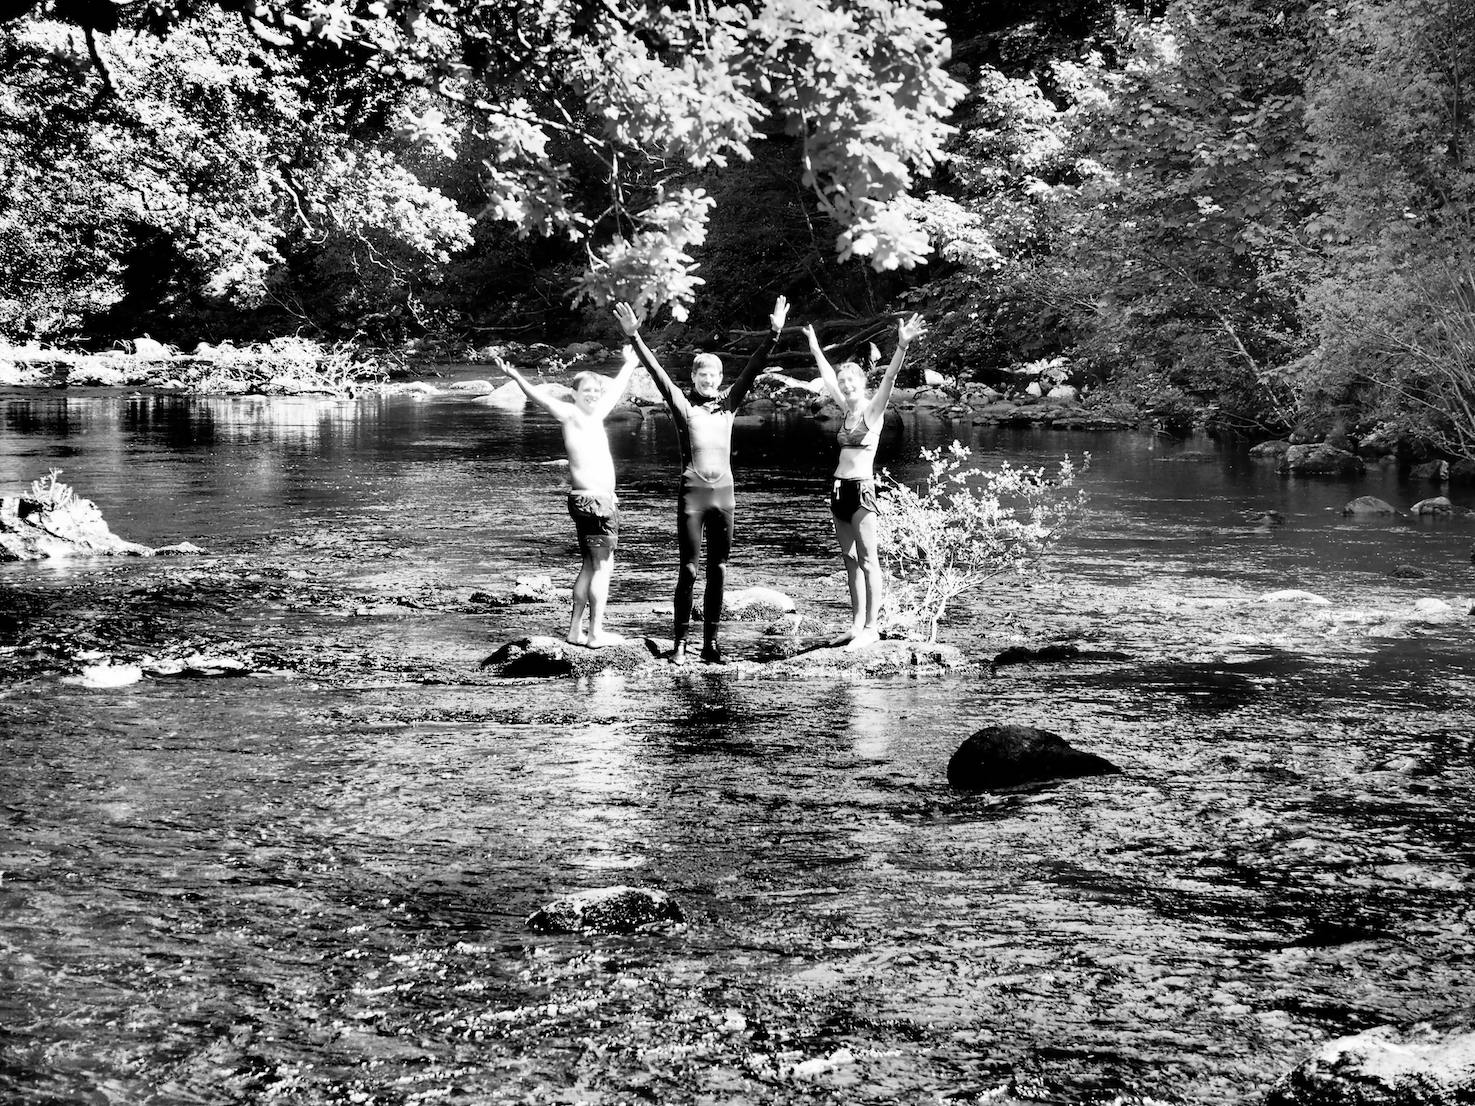 The joy of the river swimmers  Steve, Caspar and Ali